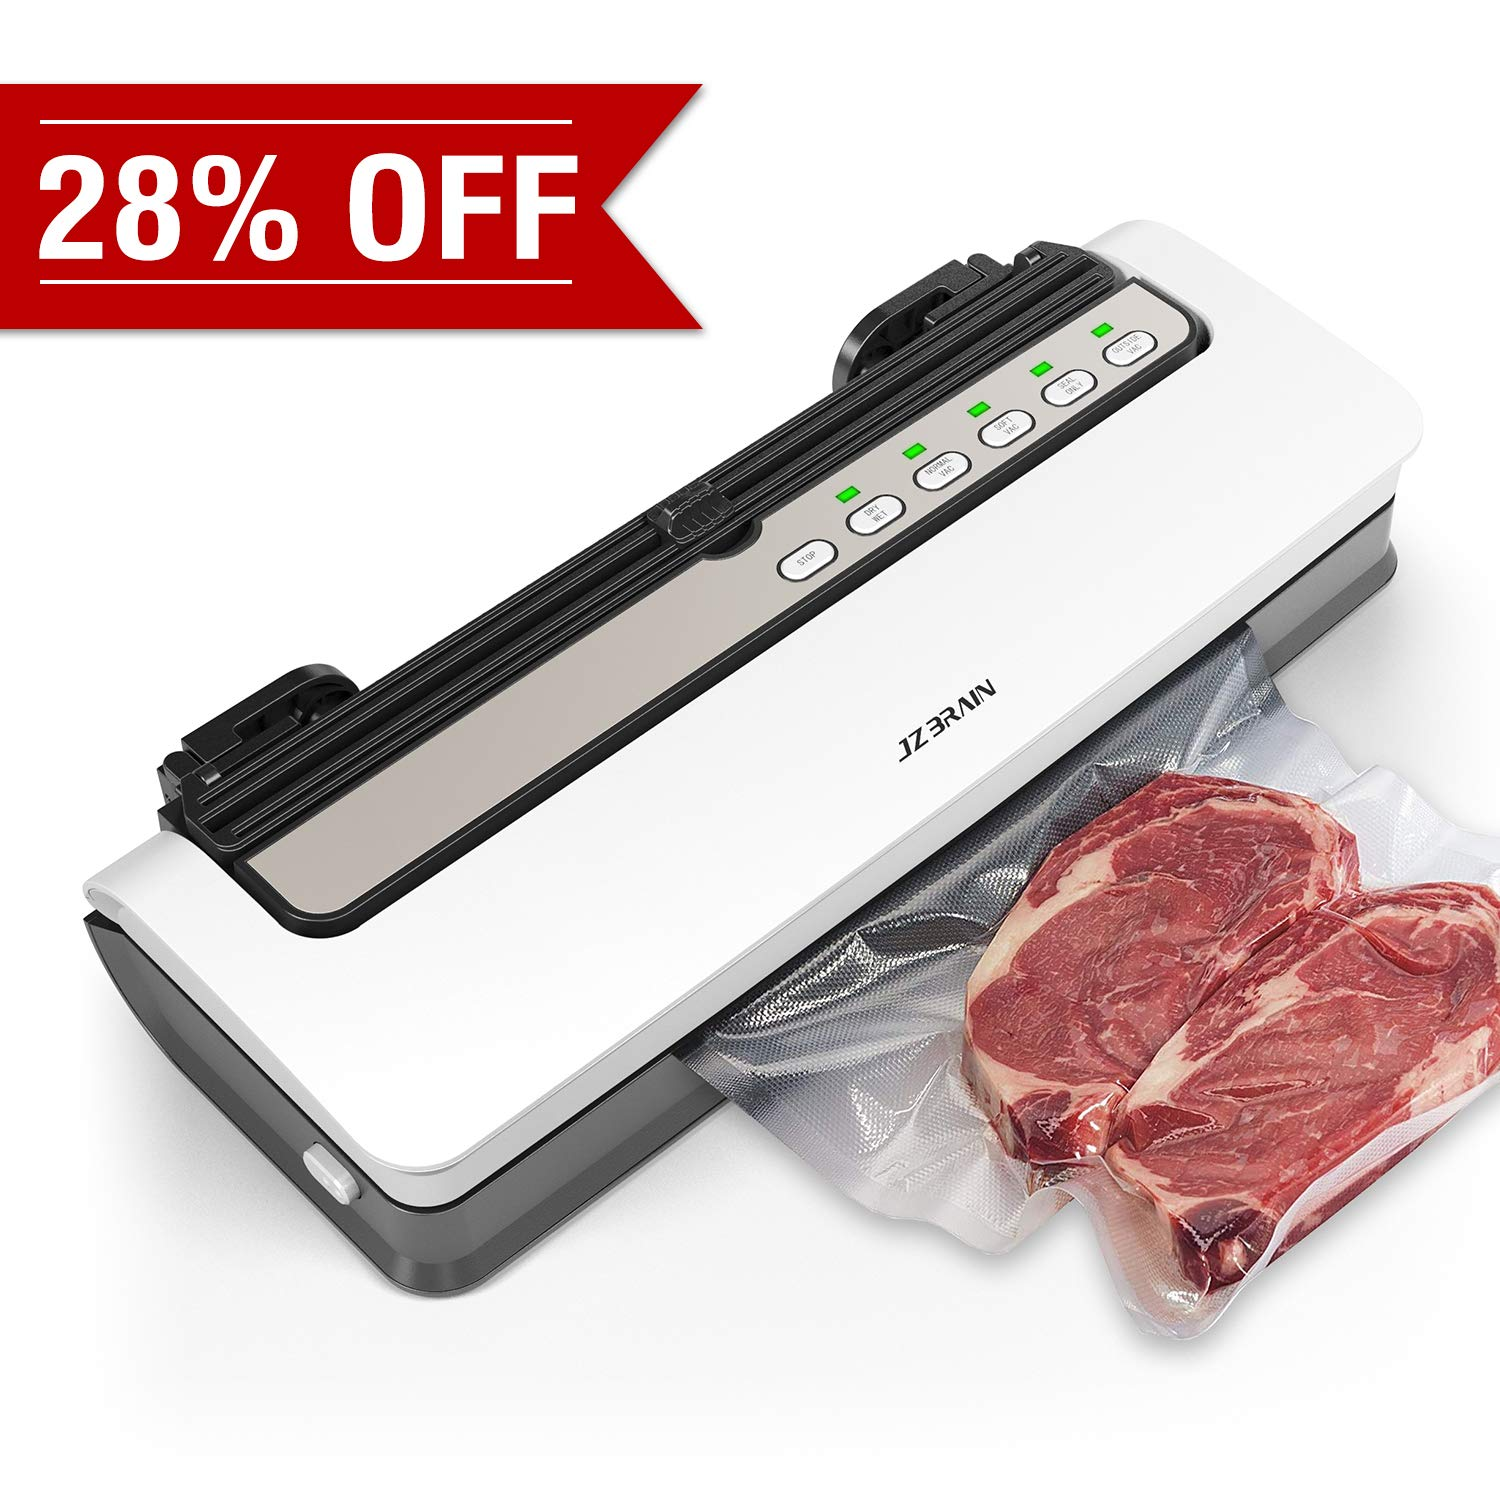 JZBRAIN Vacuum Sealer, Automatic Air Sealing Machine For Food Saver, Compact Design,Lab Tested,Dry & Moist Food Modes by JZBRAIN